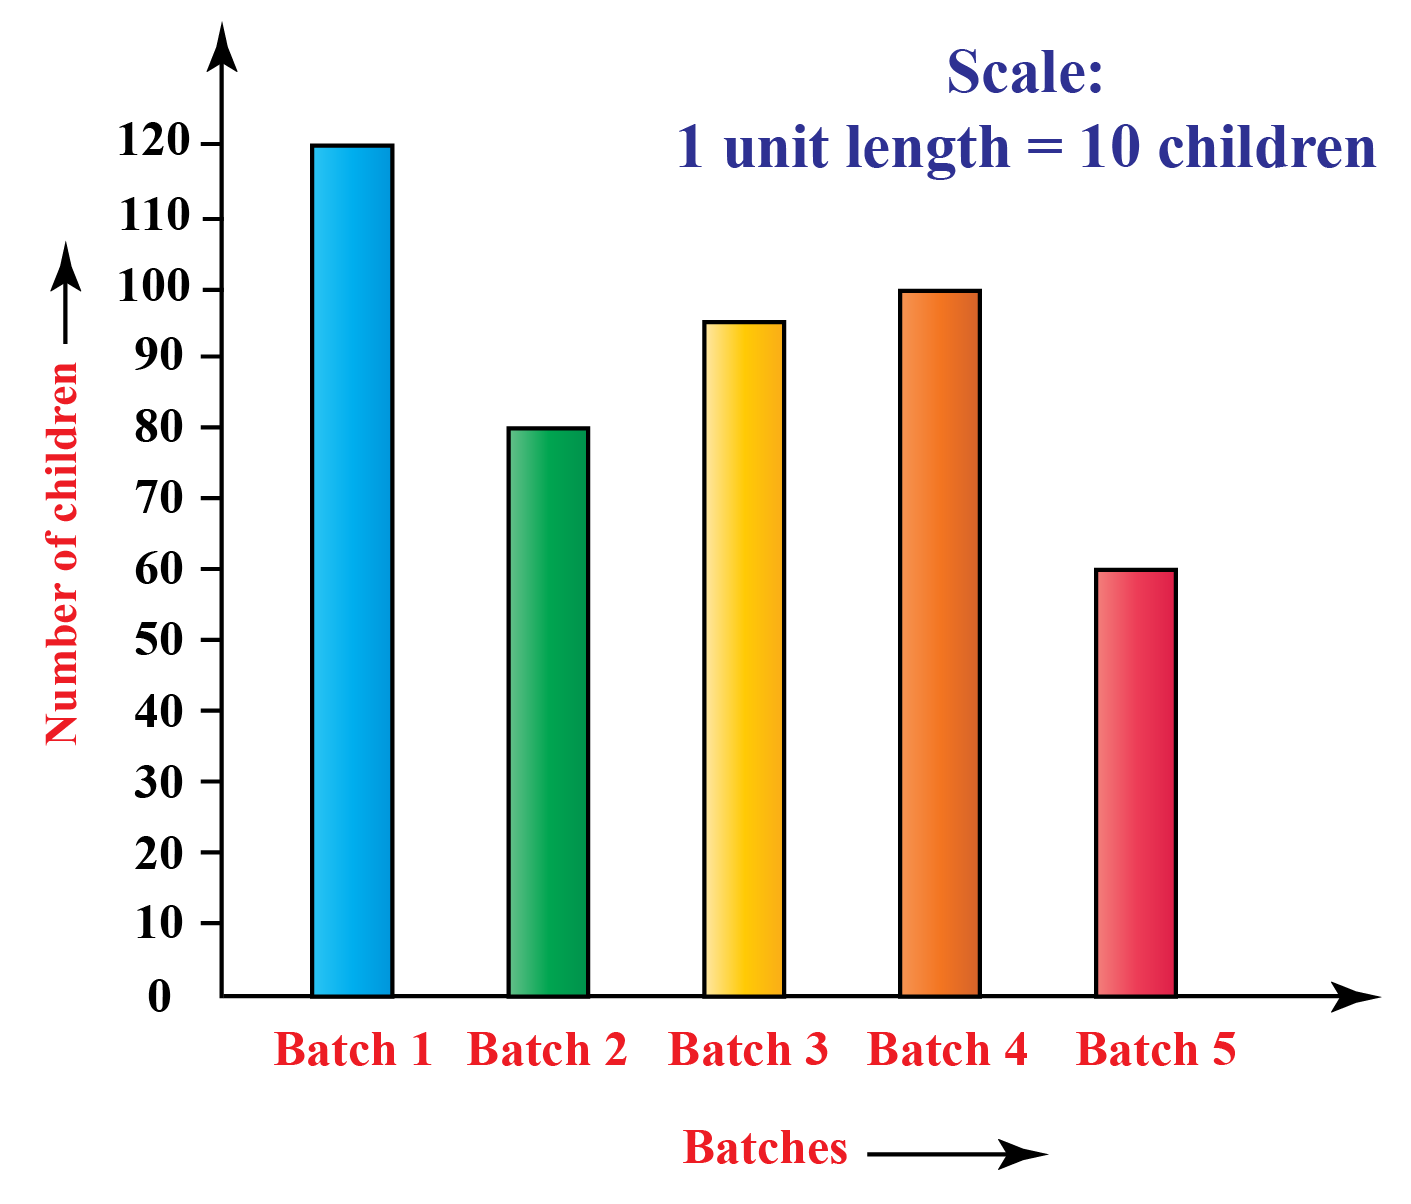 The data is represented by the bar graph